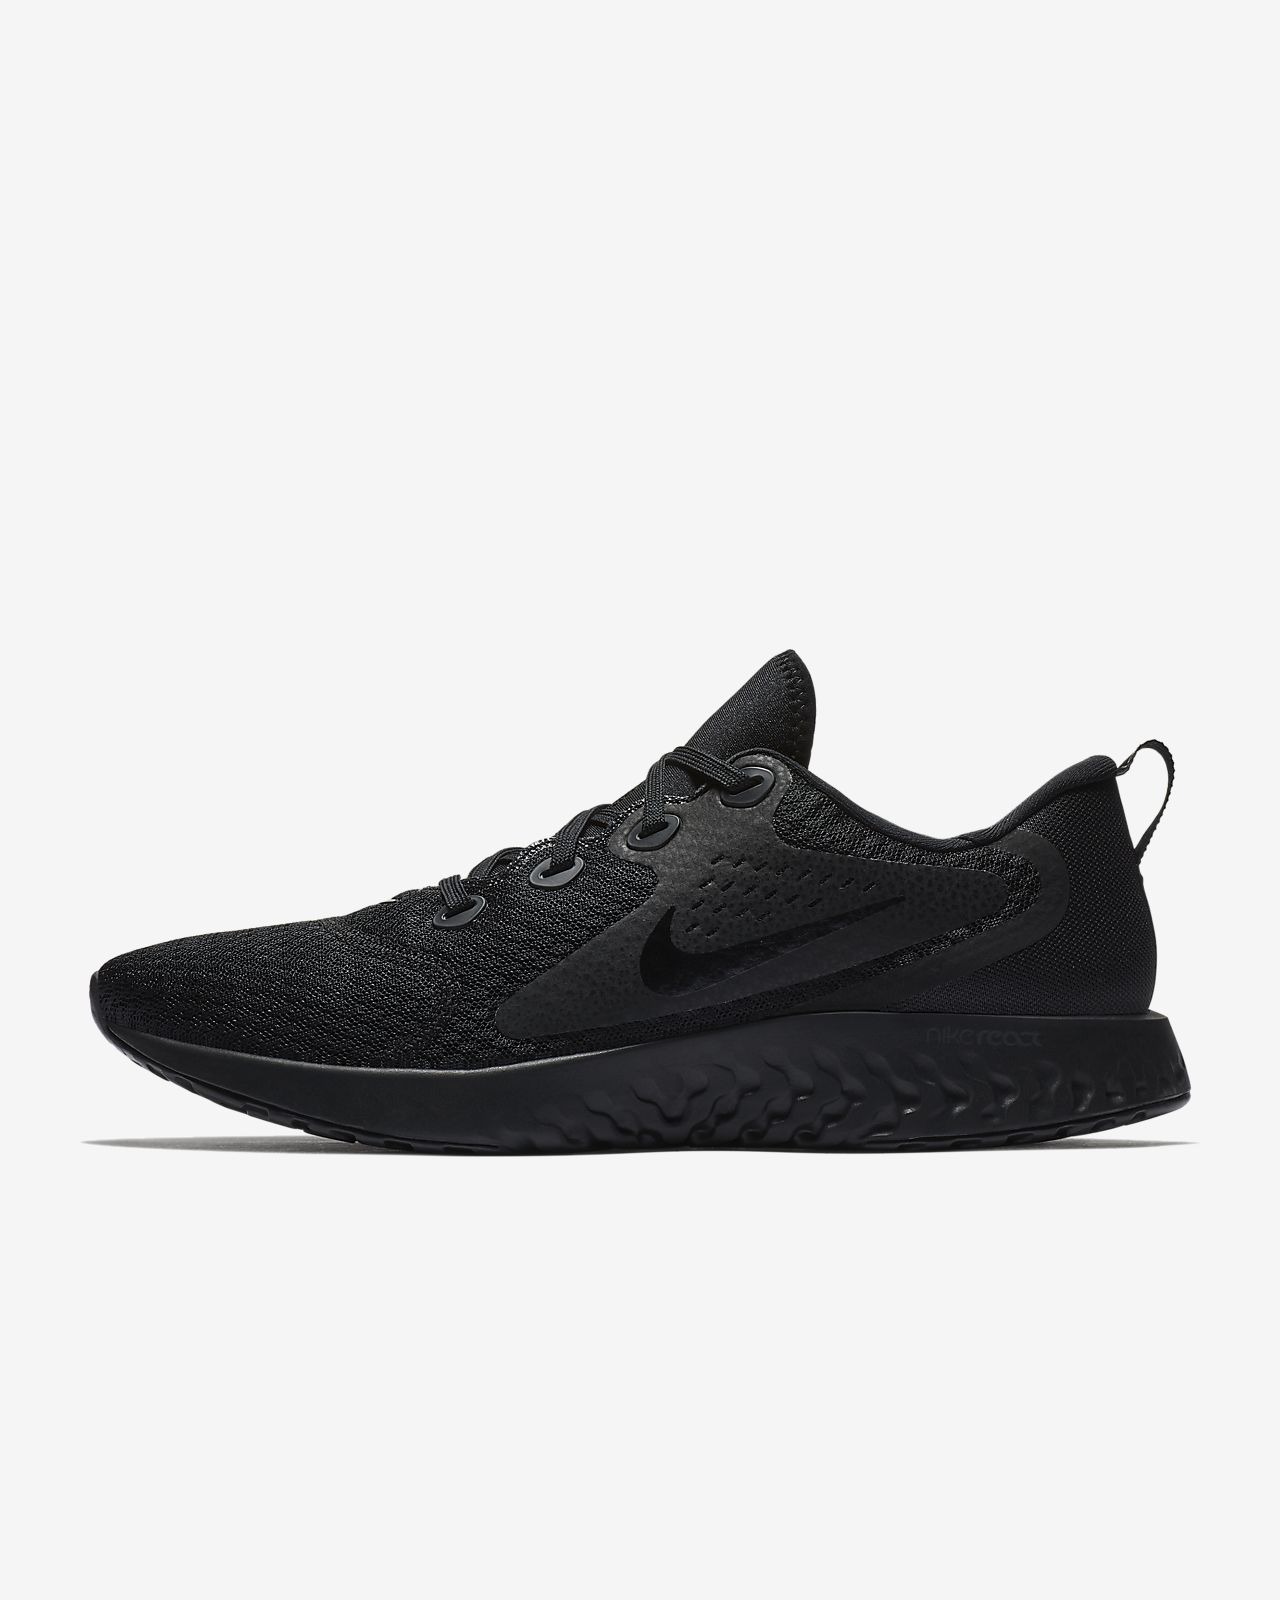 check out 7b73a 7bbea Nike Legend React Men s Running Shoe